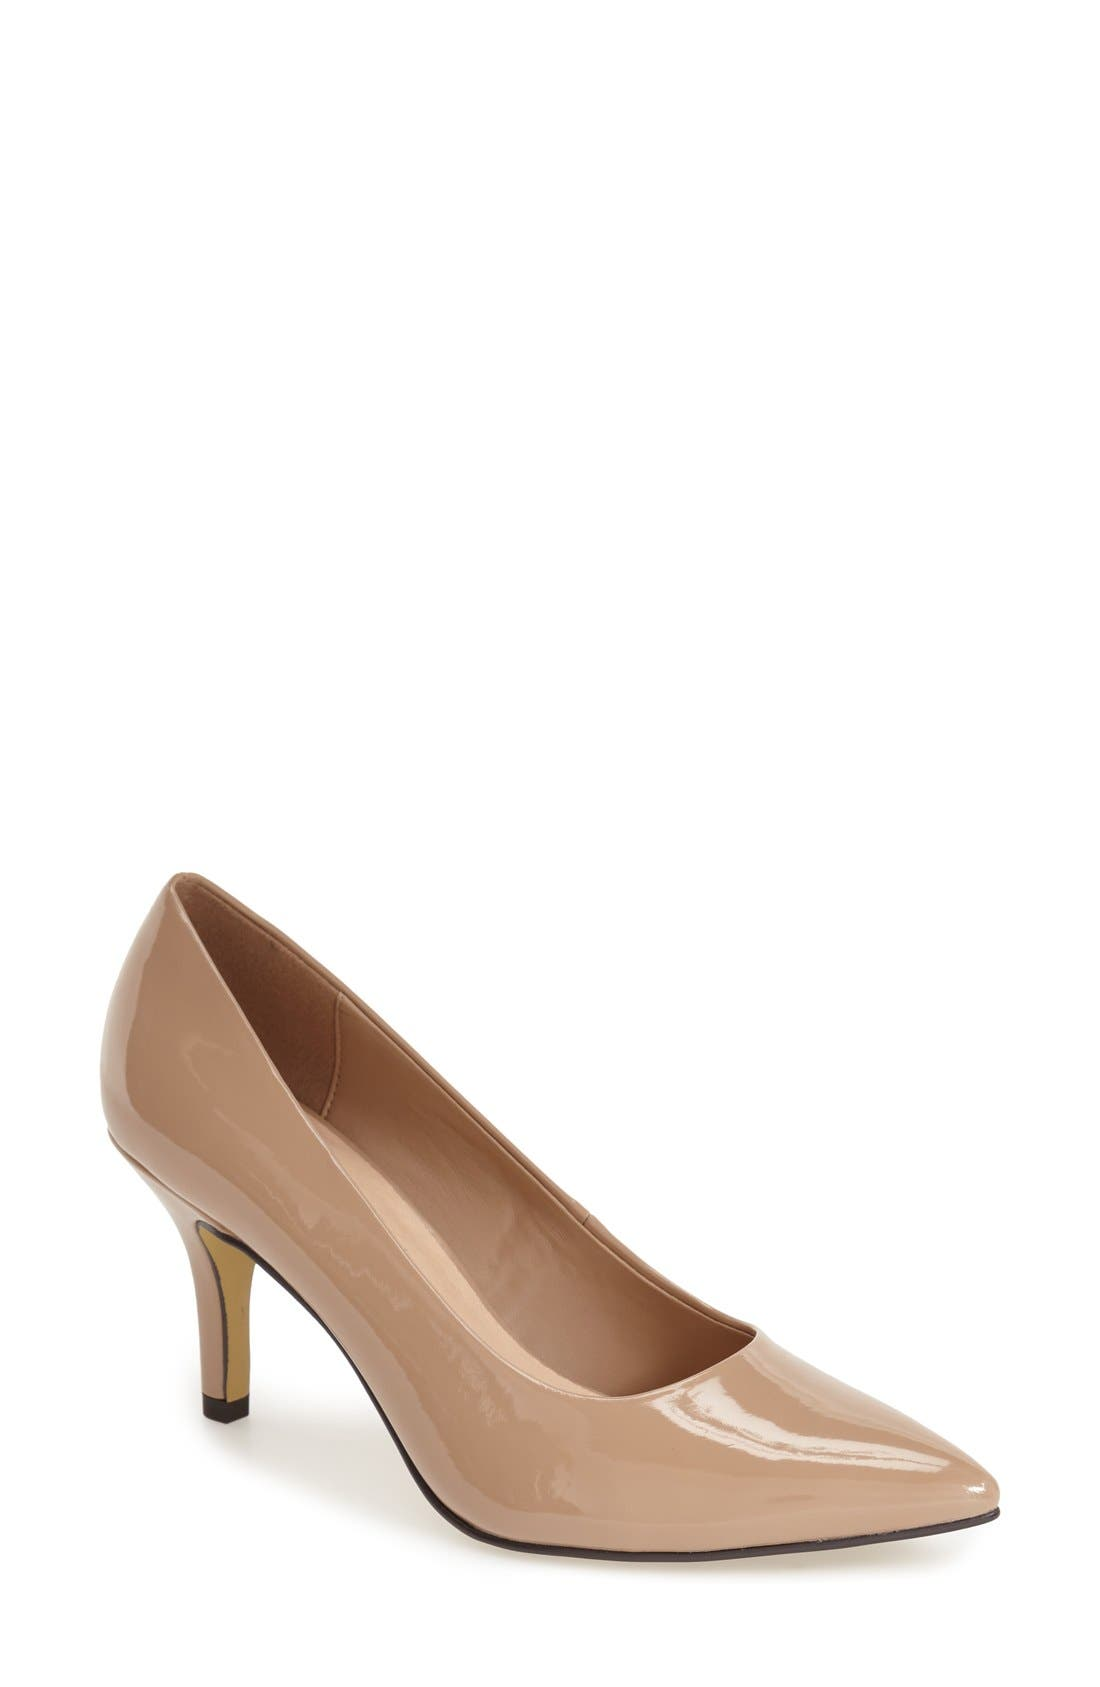 'Define' Pointy Toe Pump,                             Main thumbnail 1, color,                             NUDE PATENT